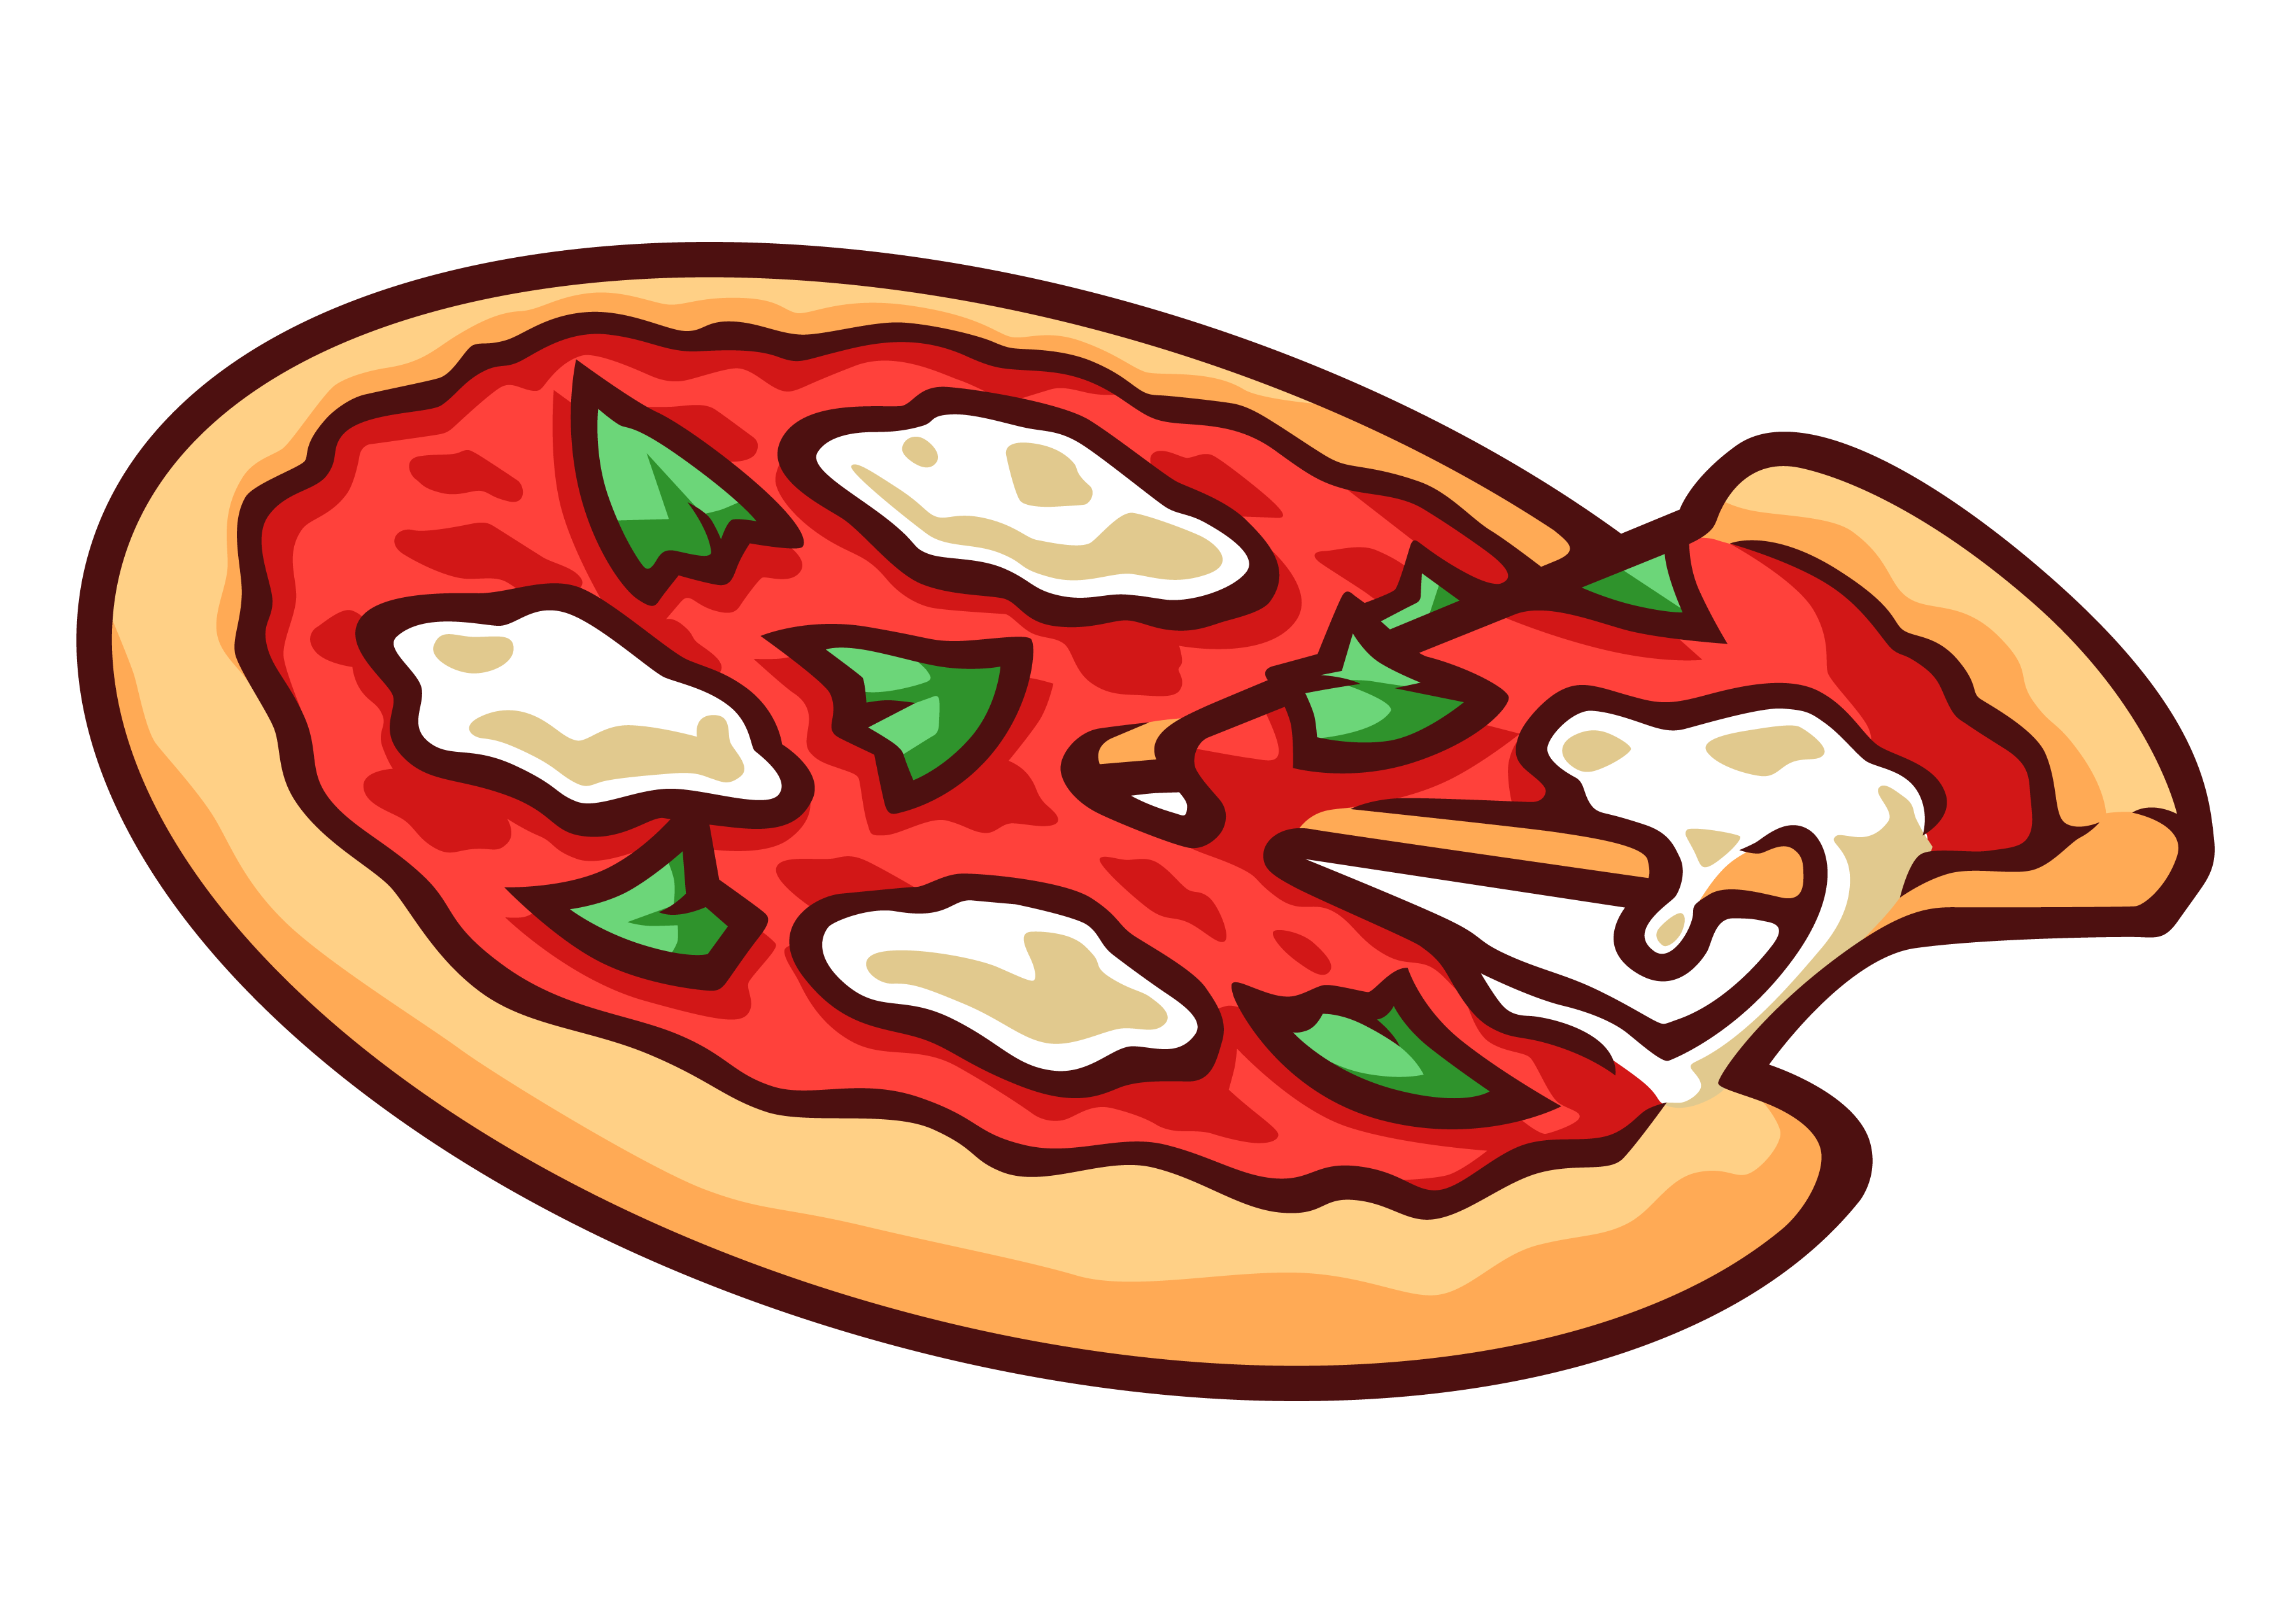 Pizza dollar bill clipart image royalty free stock Free Images Of Pizzas, Download Free Clip Art, Free Clip Art ... image royalty free stock